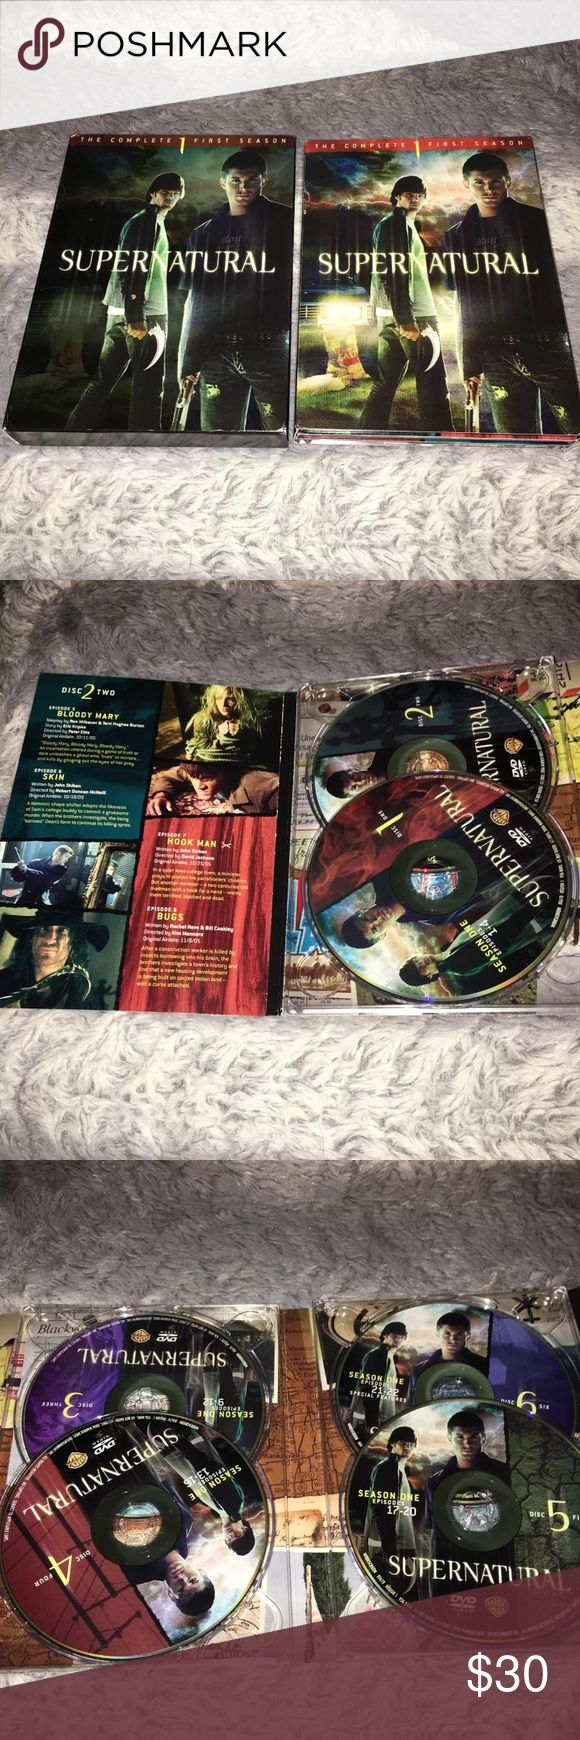 Completed First Season Of Supernatural All episodes of season one on disc   All discs in very good condition Other